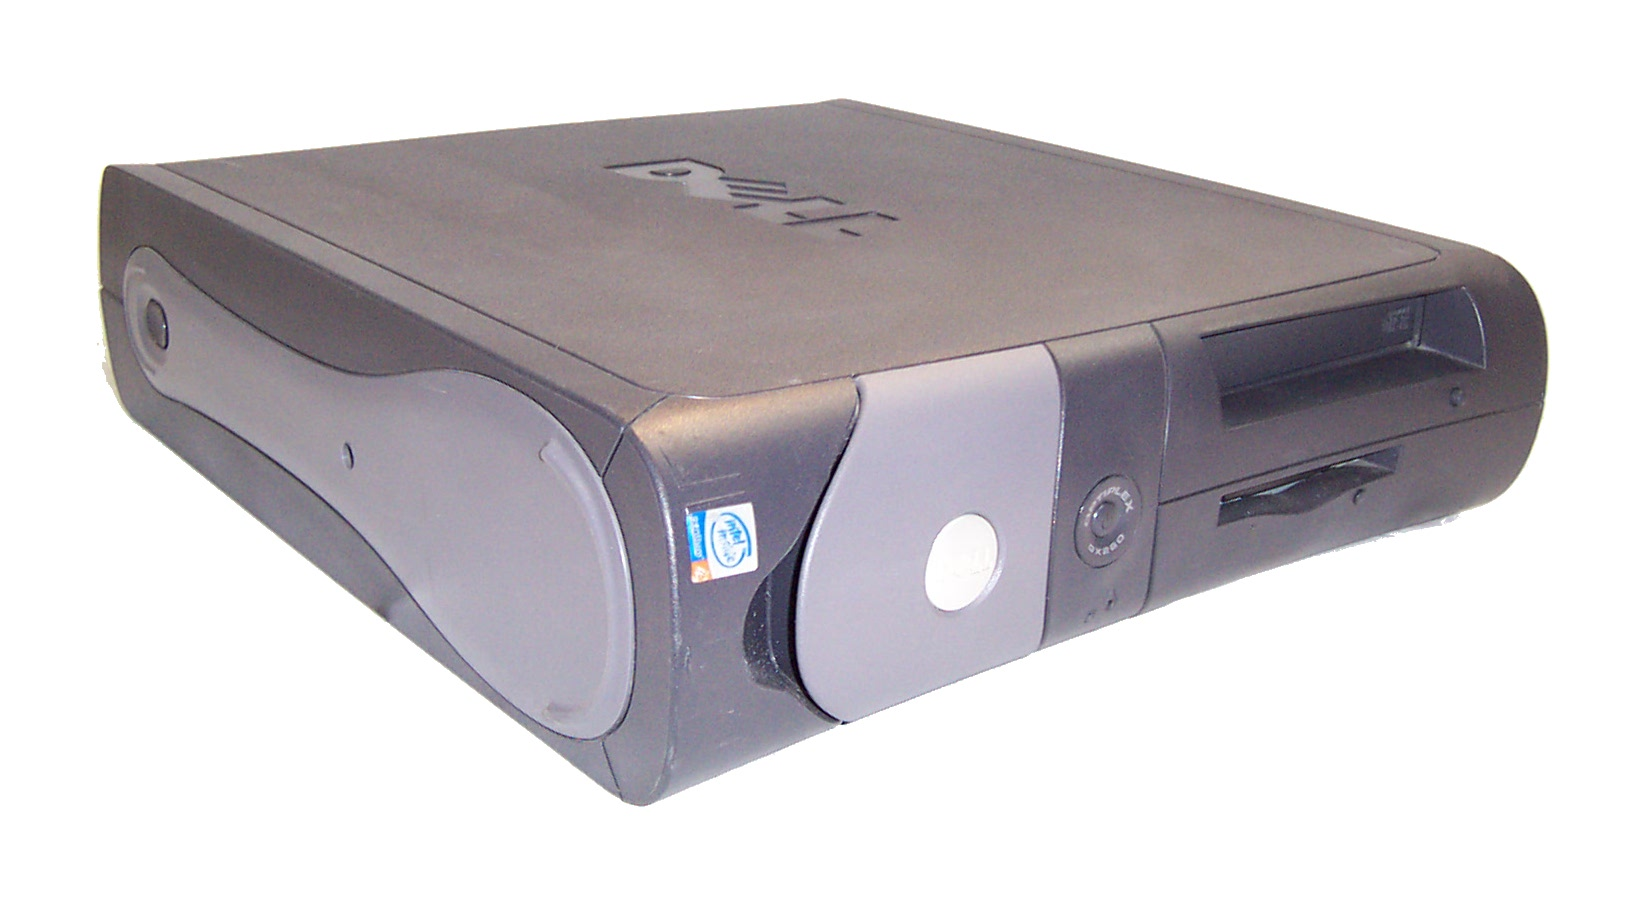 DELL GX-260 DRIVERS FOR PC